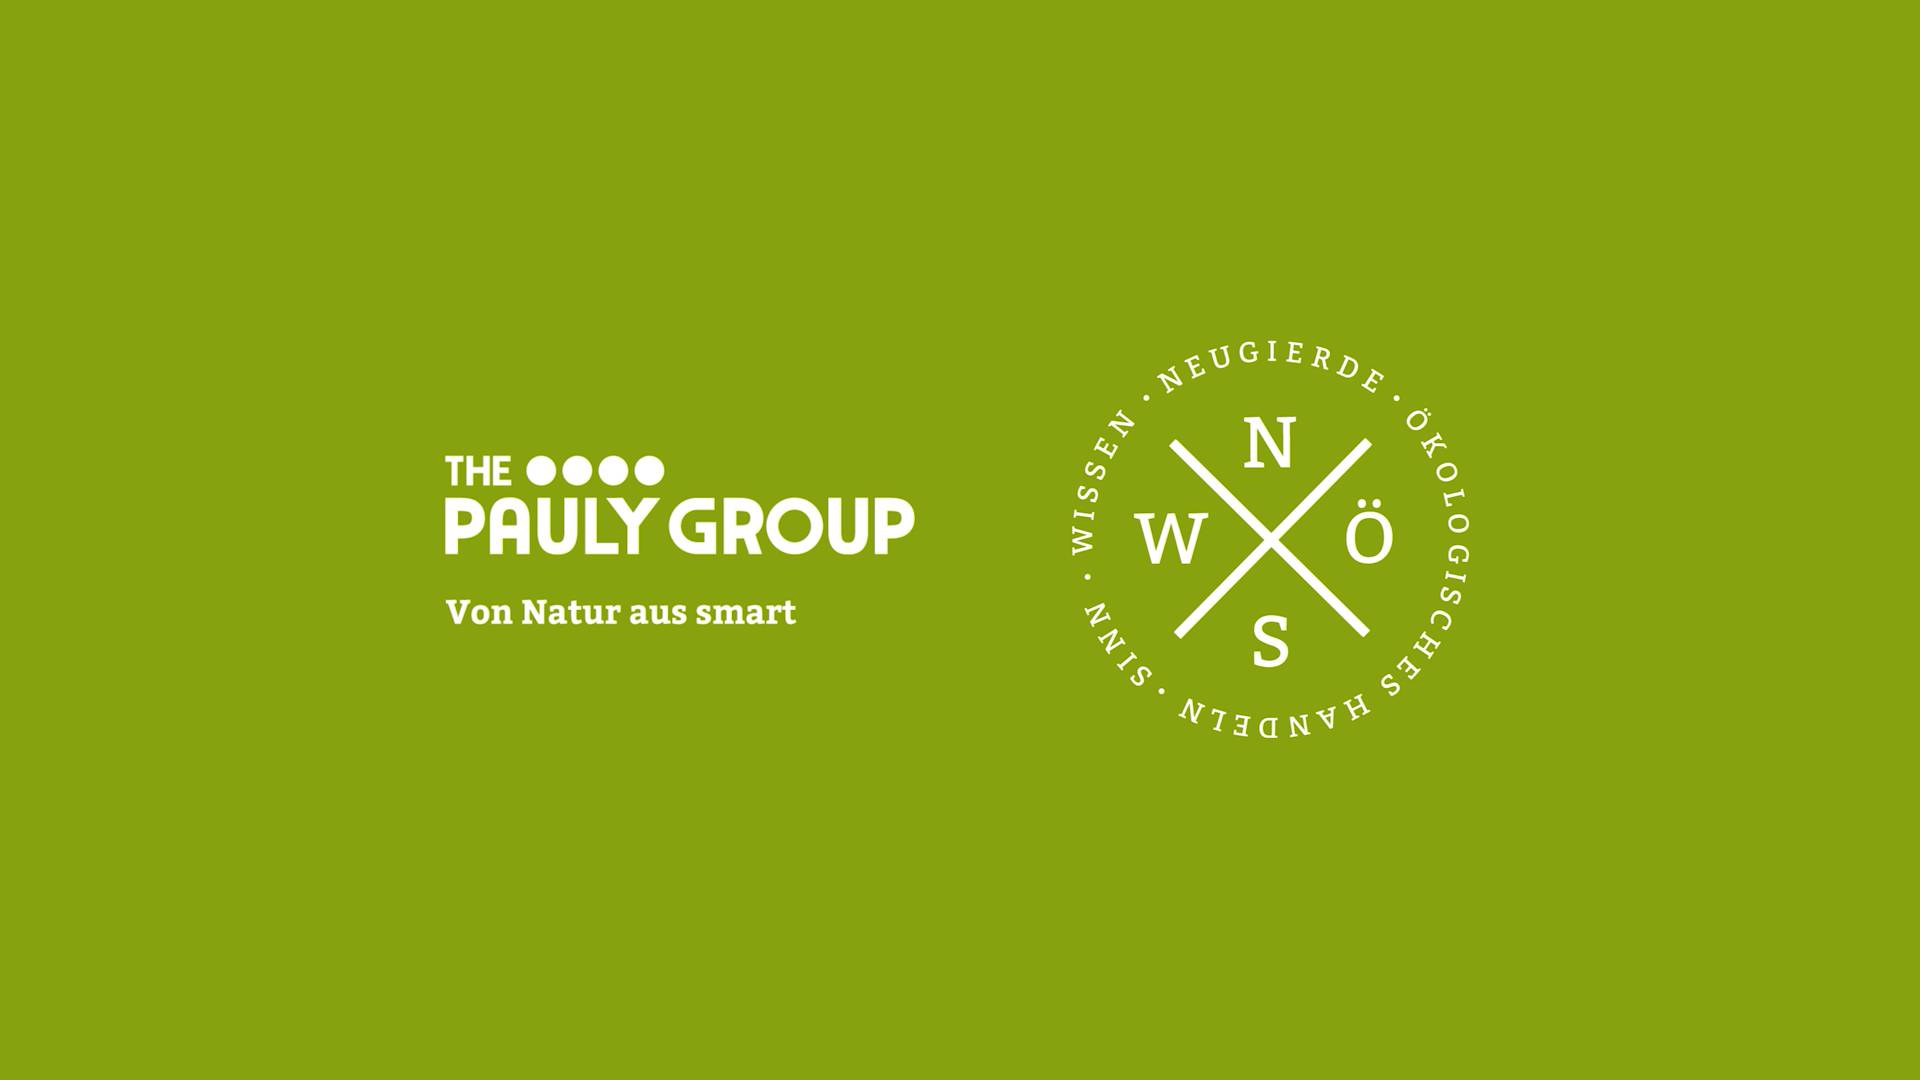 Wir sind THE PAULY GROUP